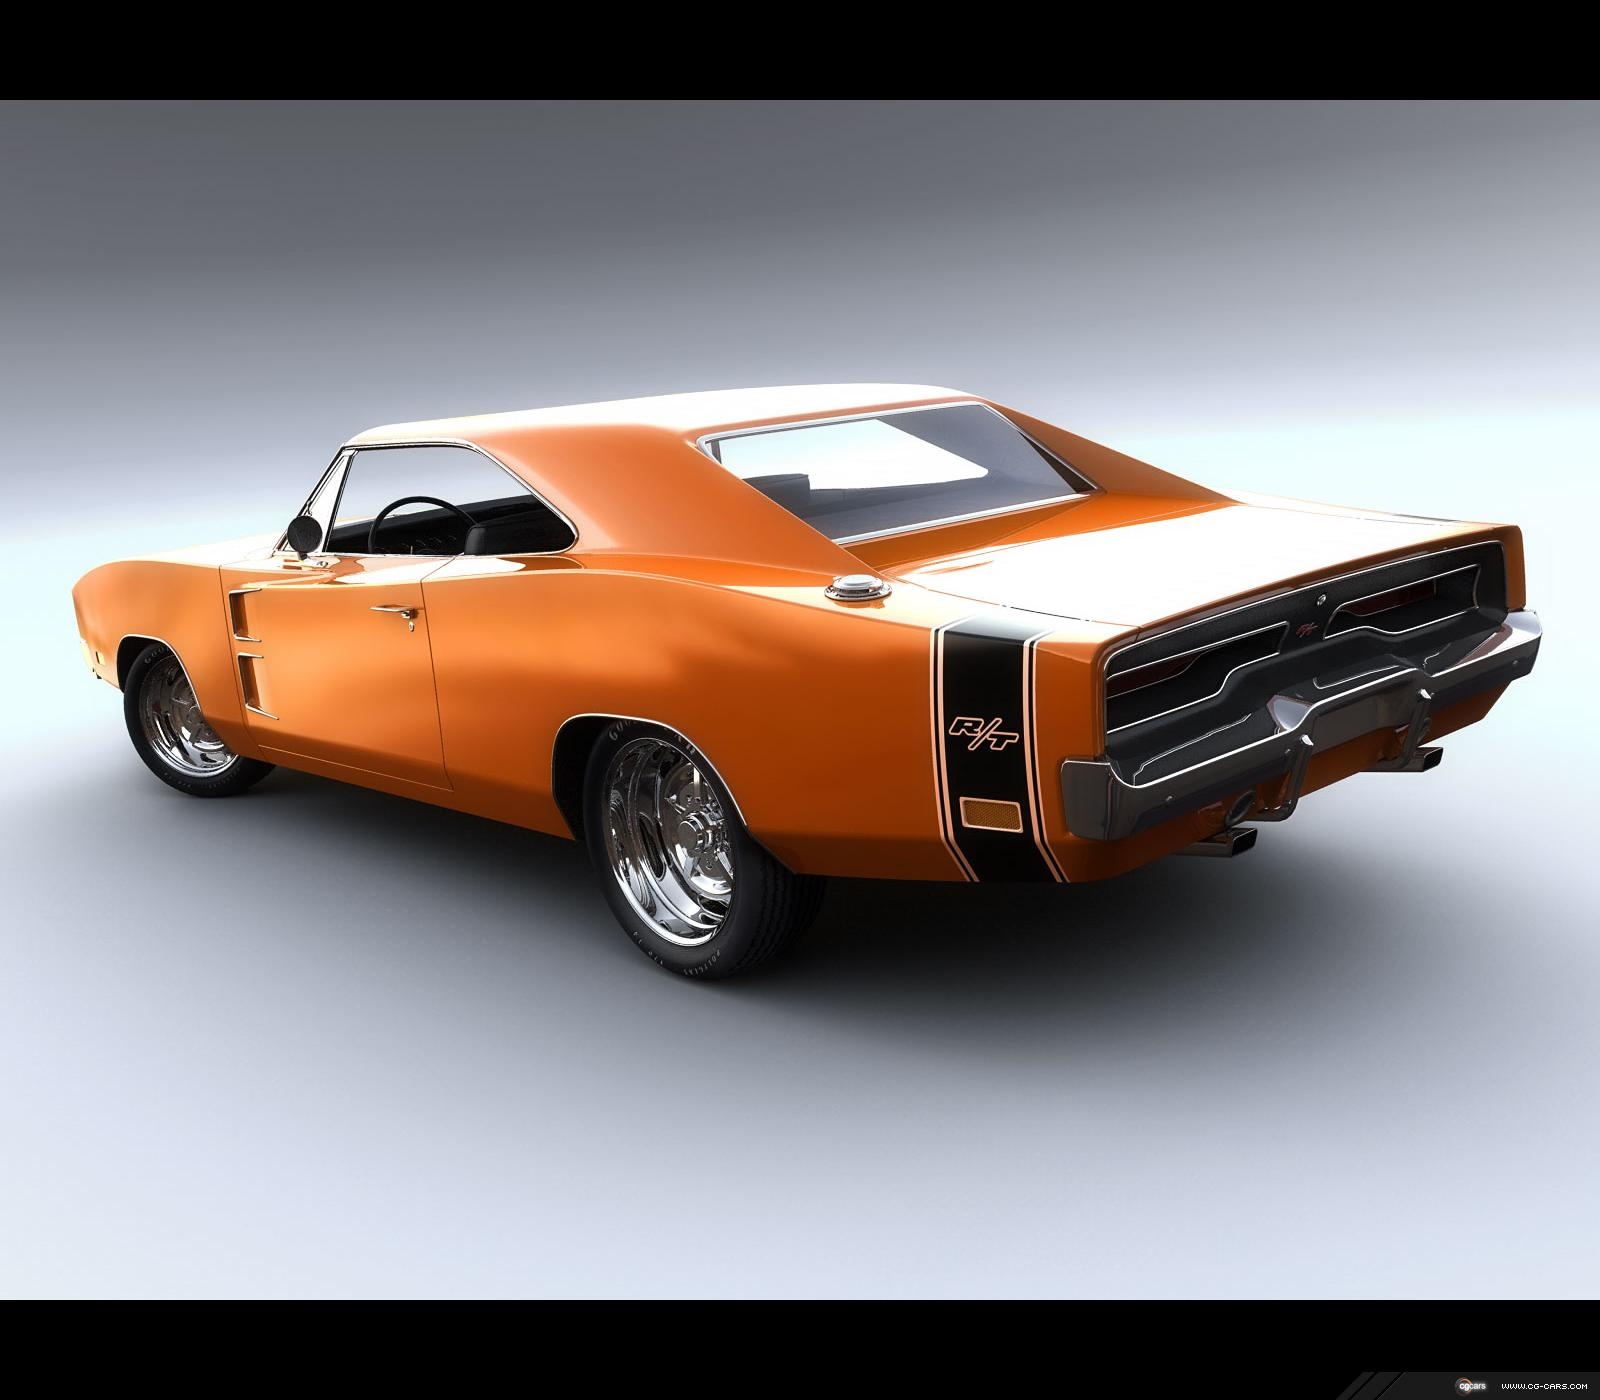 1969 charger wallpaper - photo #10